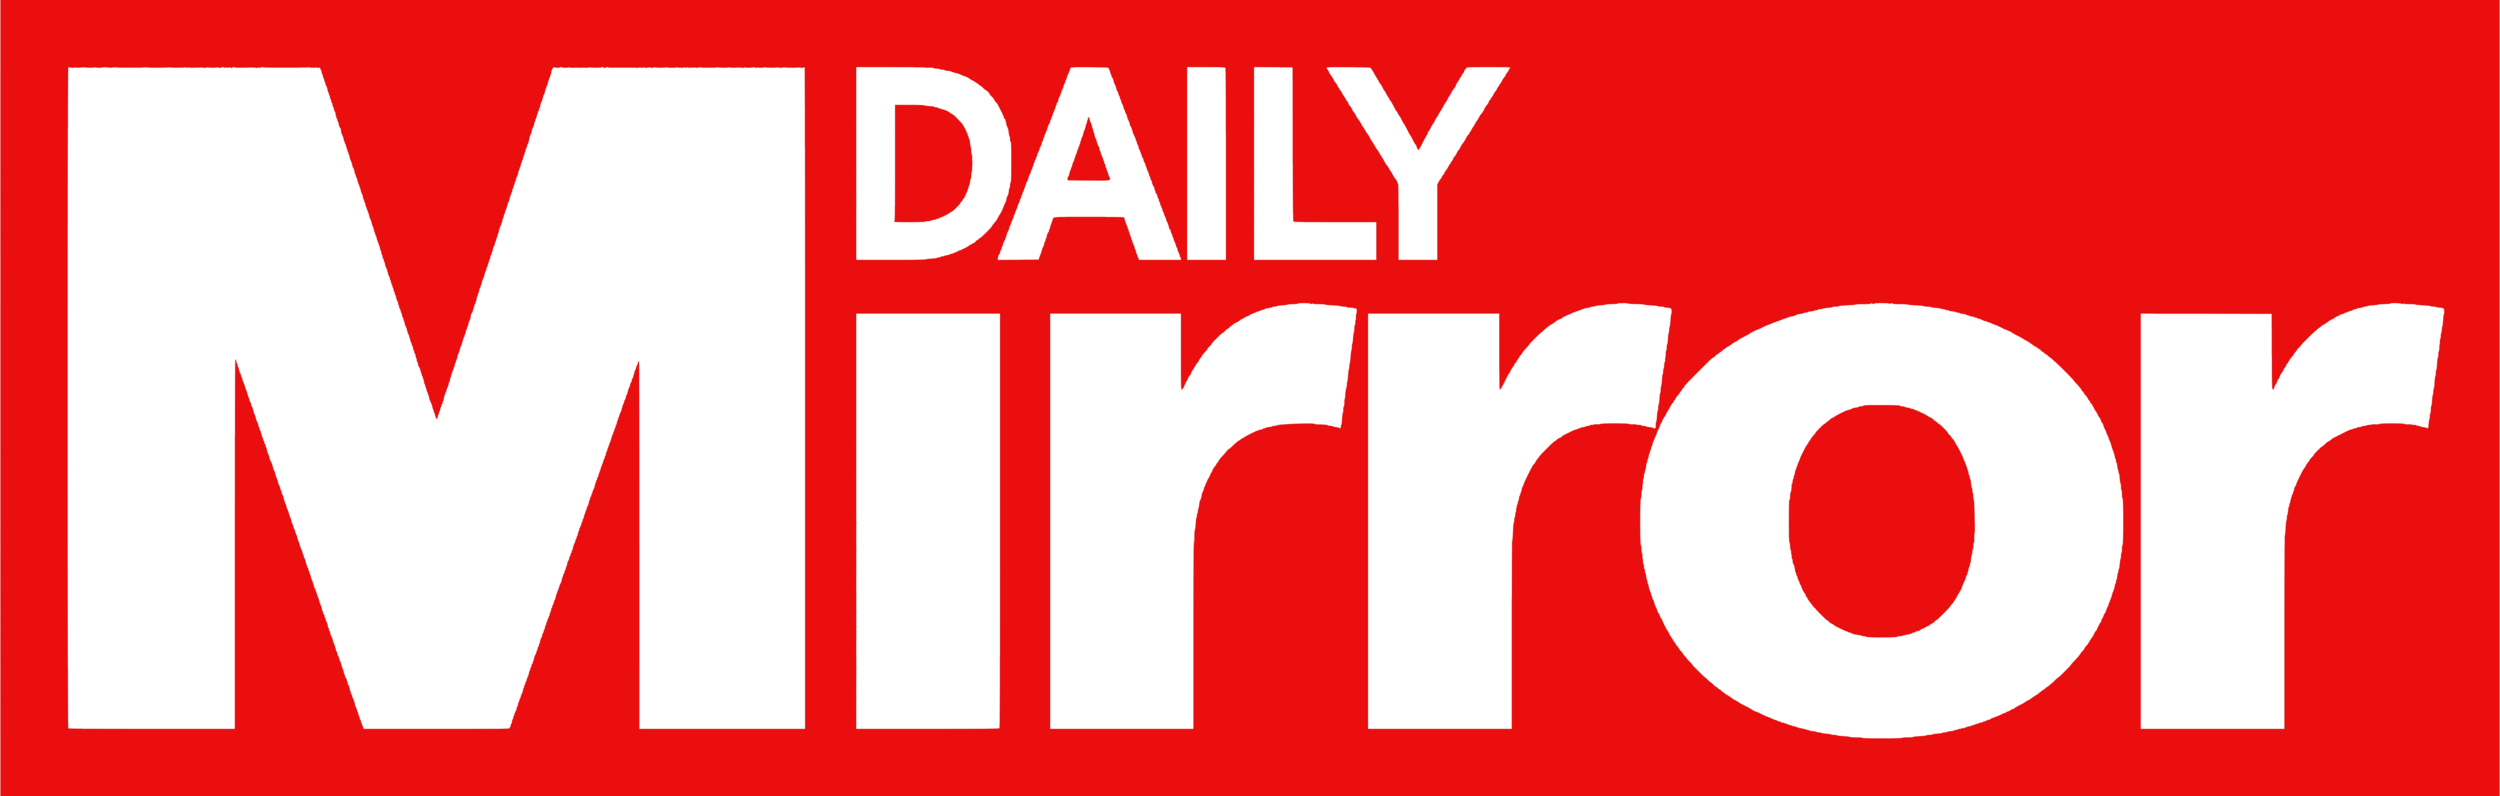 The_Daily_Mirror_logo_red_background.png